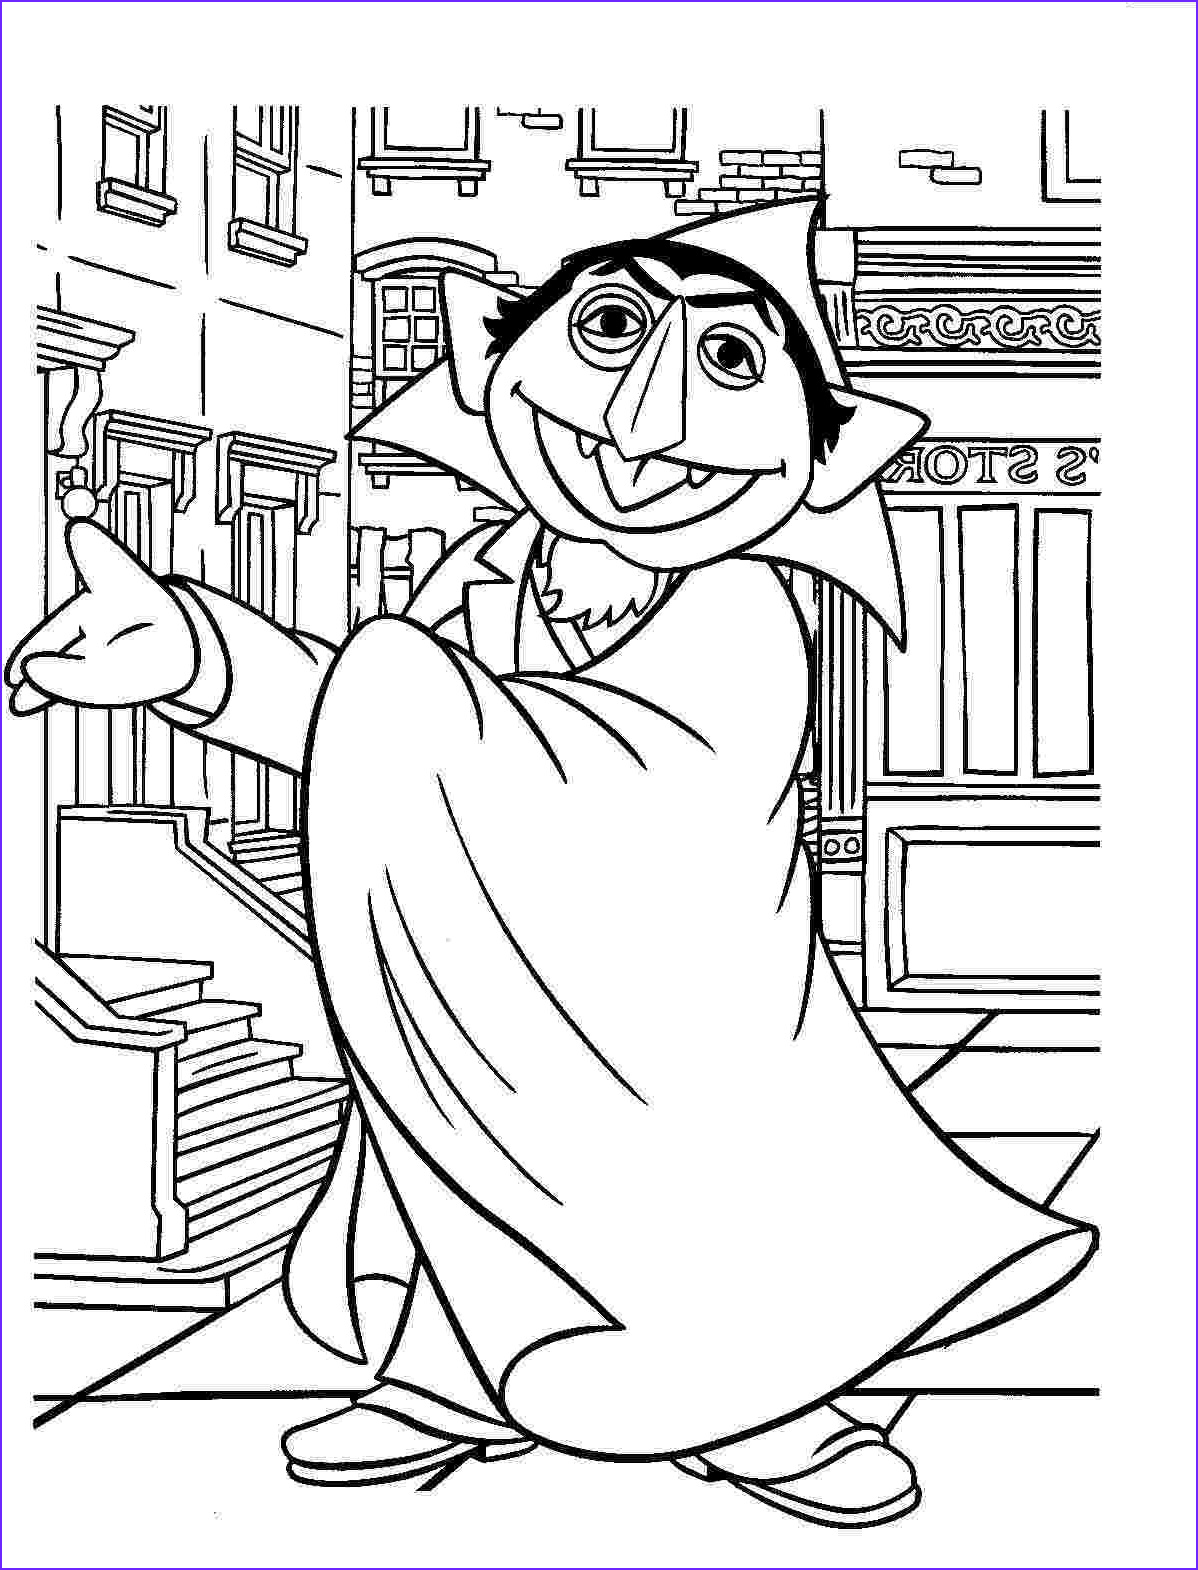 sesame street coloring pages free printable activities for kids christmas holiday 17